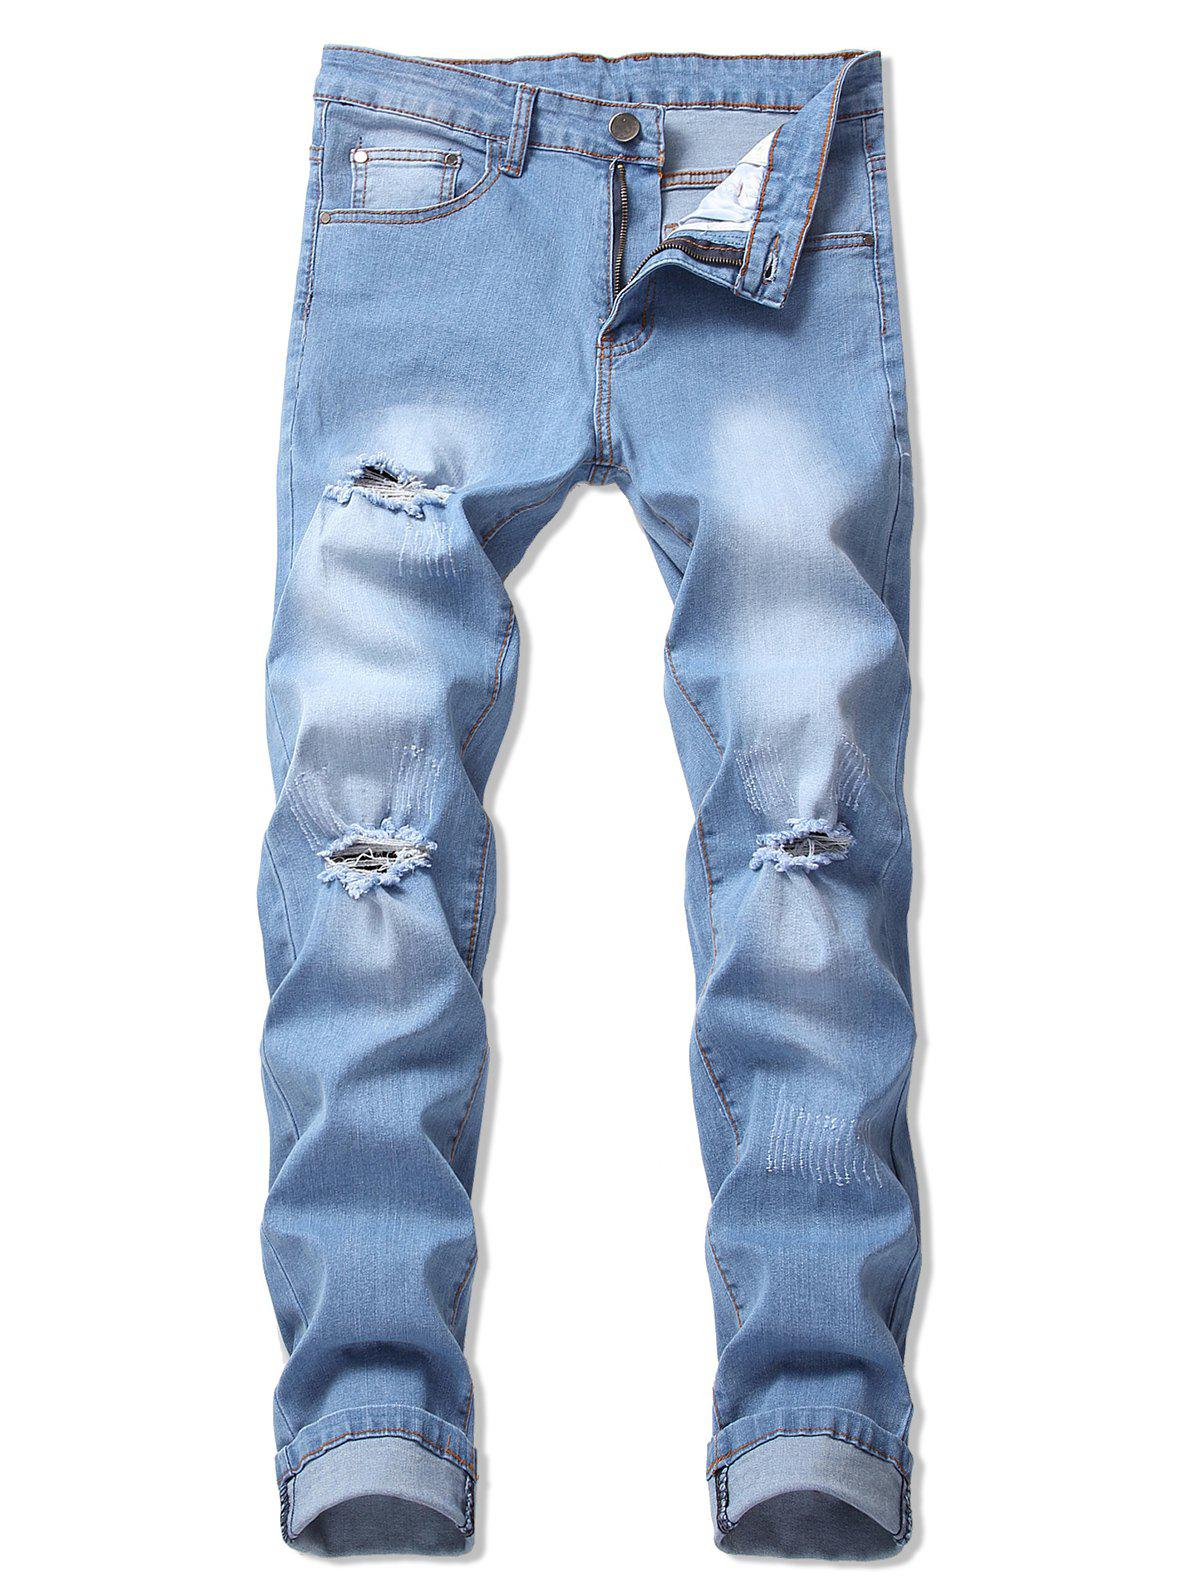 Unique Casual Ripped Design Flanging Jeans